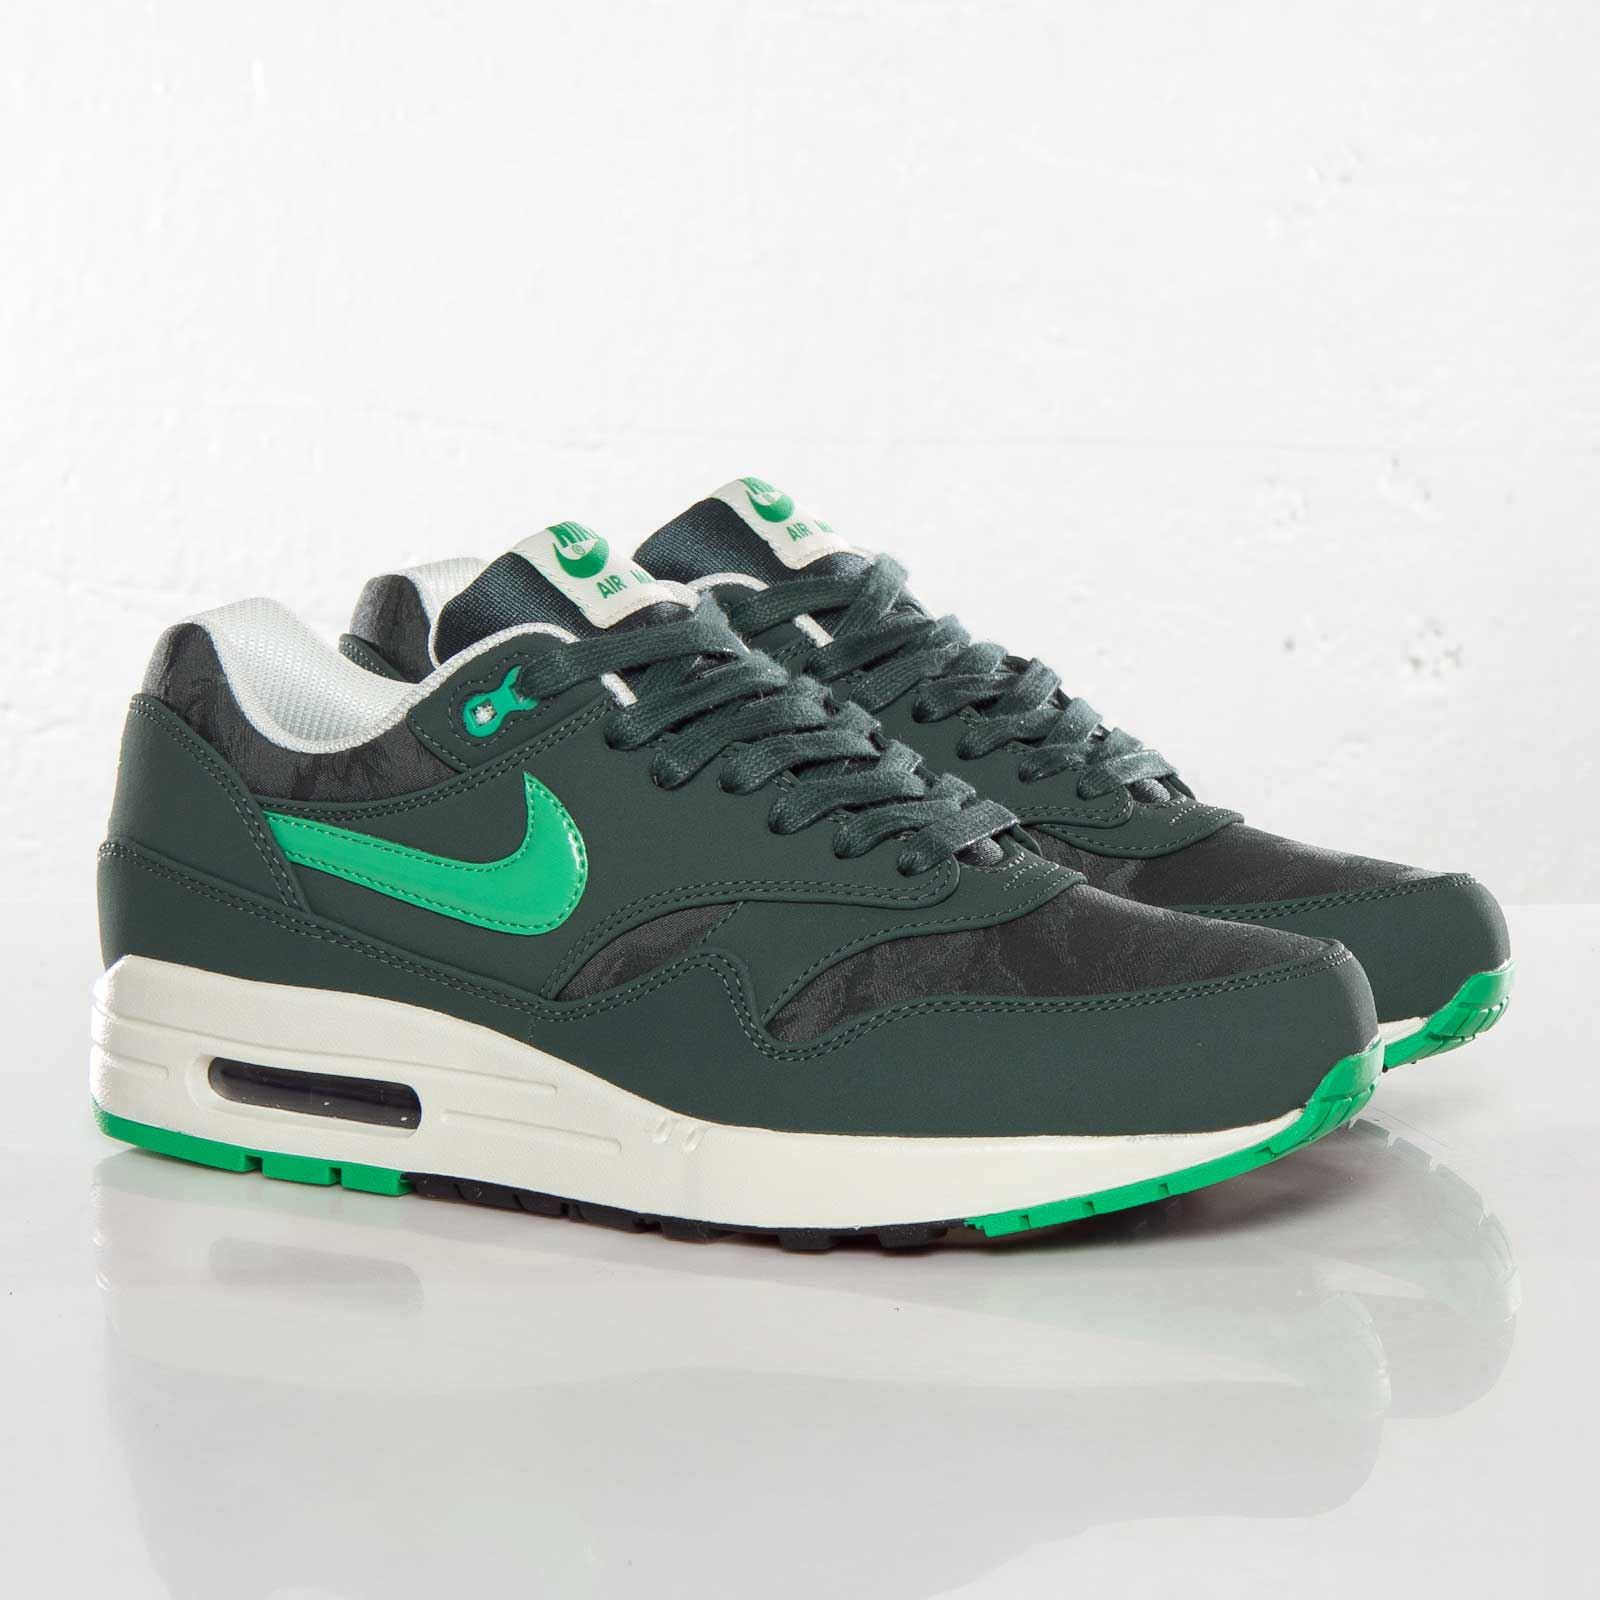 Nike Mens Air Max 1 Vintage Grün Trainers 512033 330